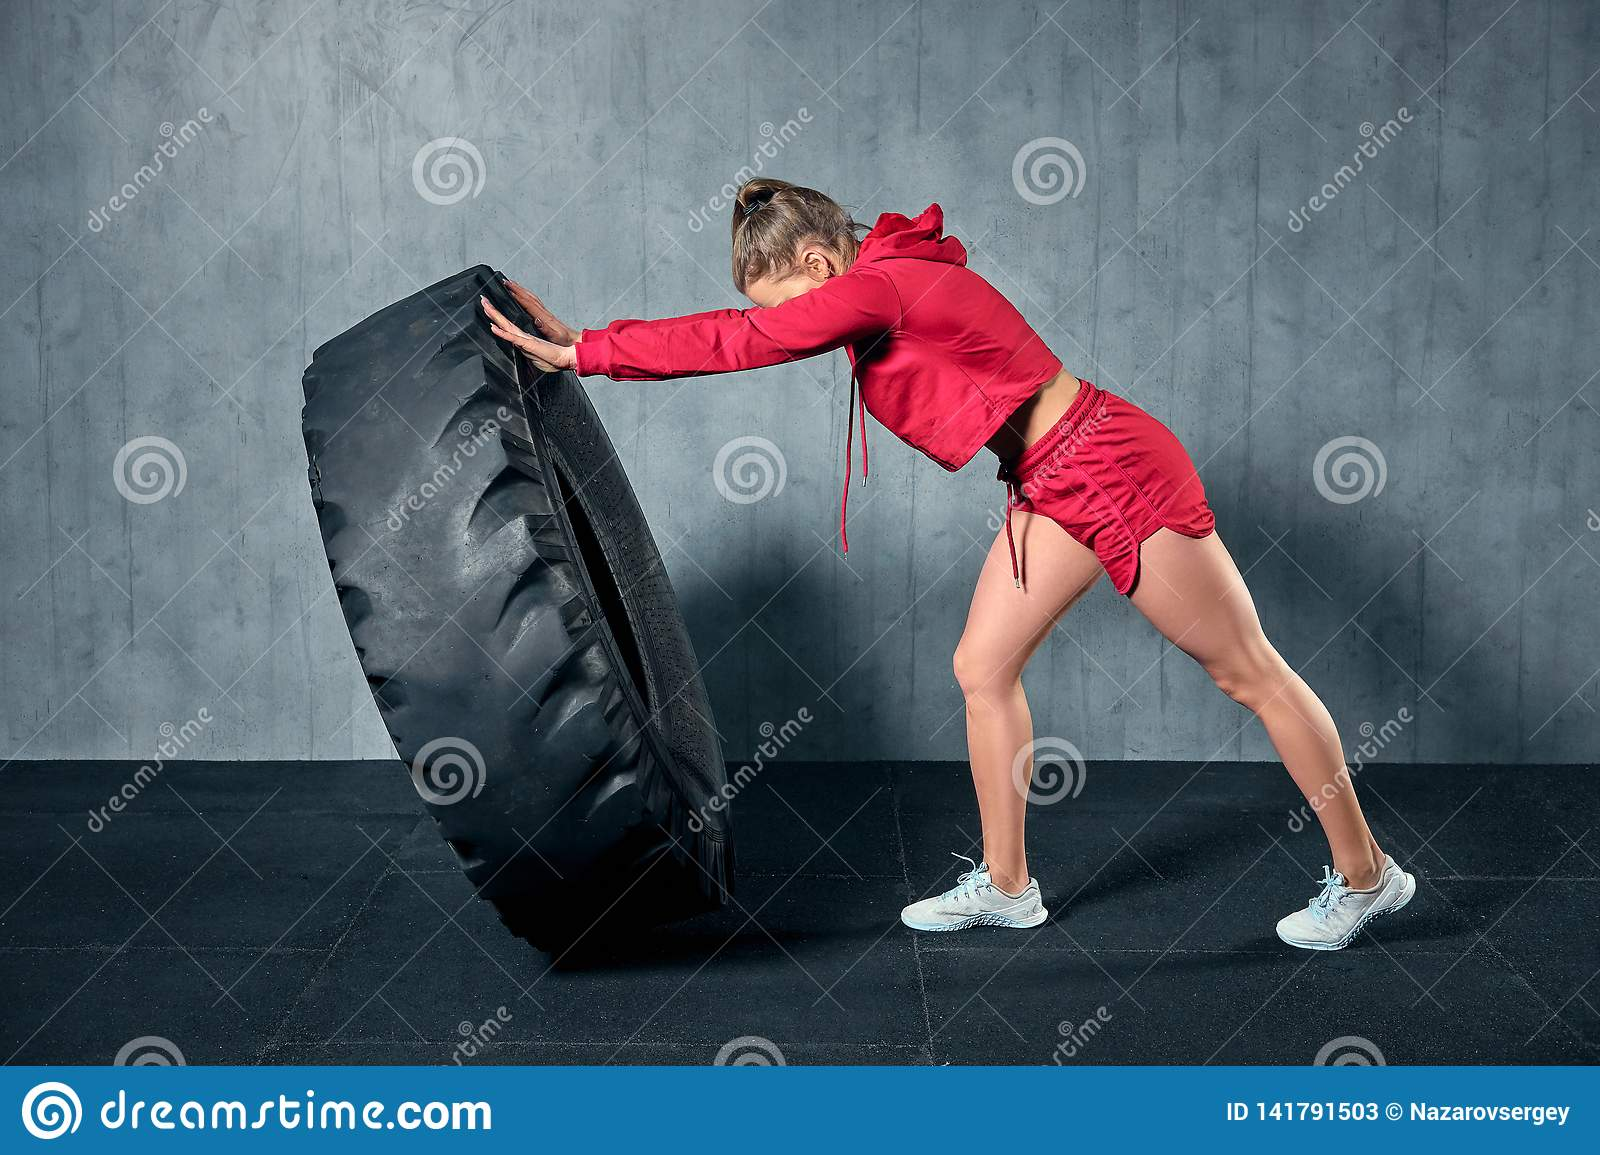 Young muscular woman flipping a tire on hard training with personal trainer at the garage gym.